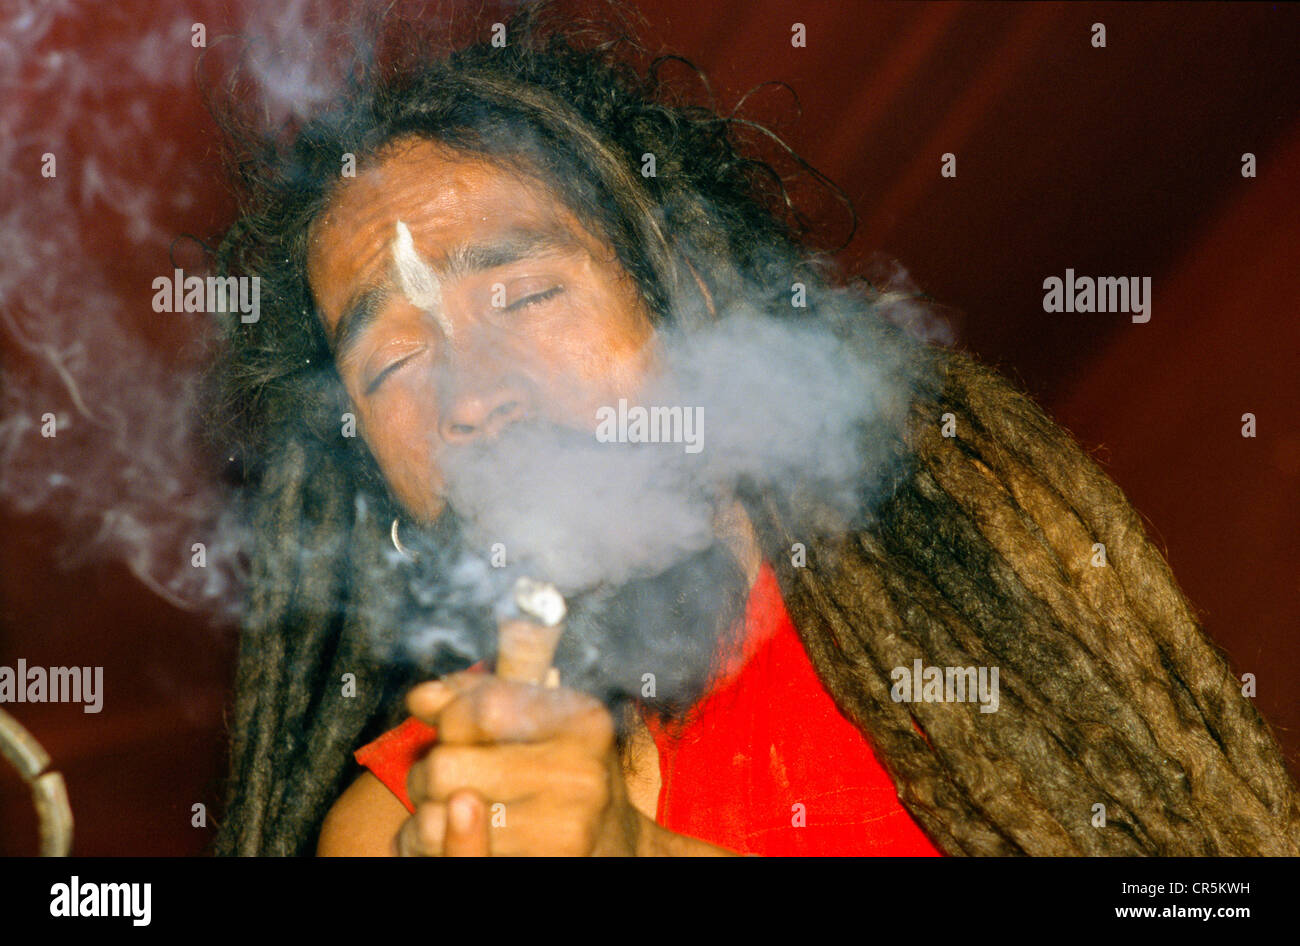 Smoking ganja is illegal, but Sadhus refer to Shiva, who also used to smoke, Allahabad, Uttar Pradesh, India, Asia - Stock Image